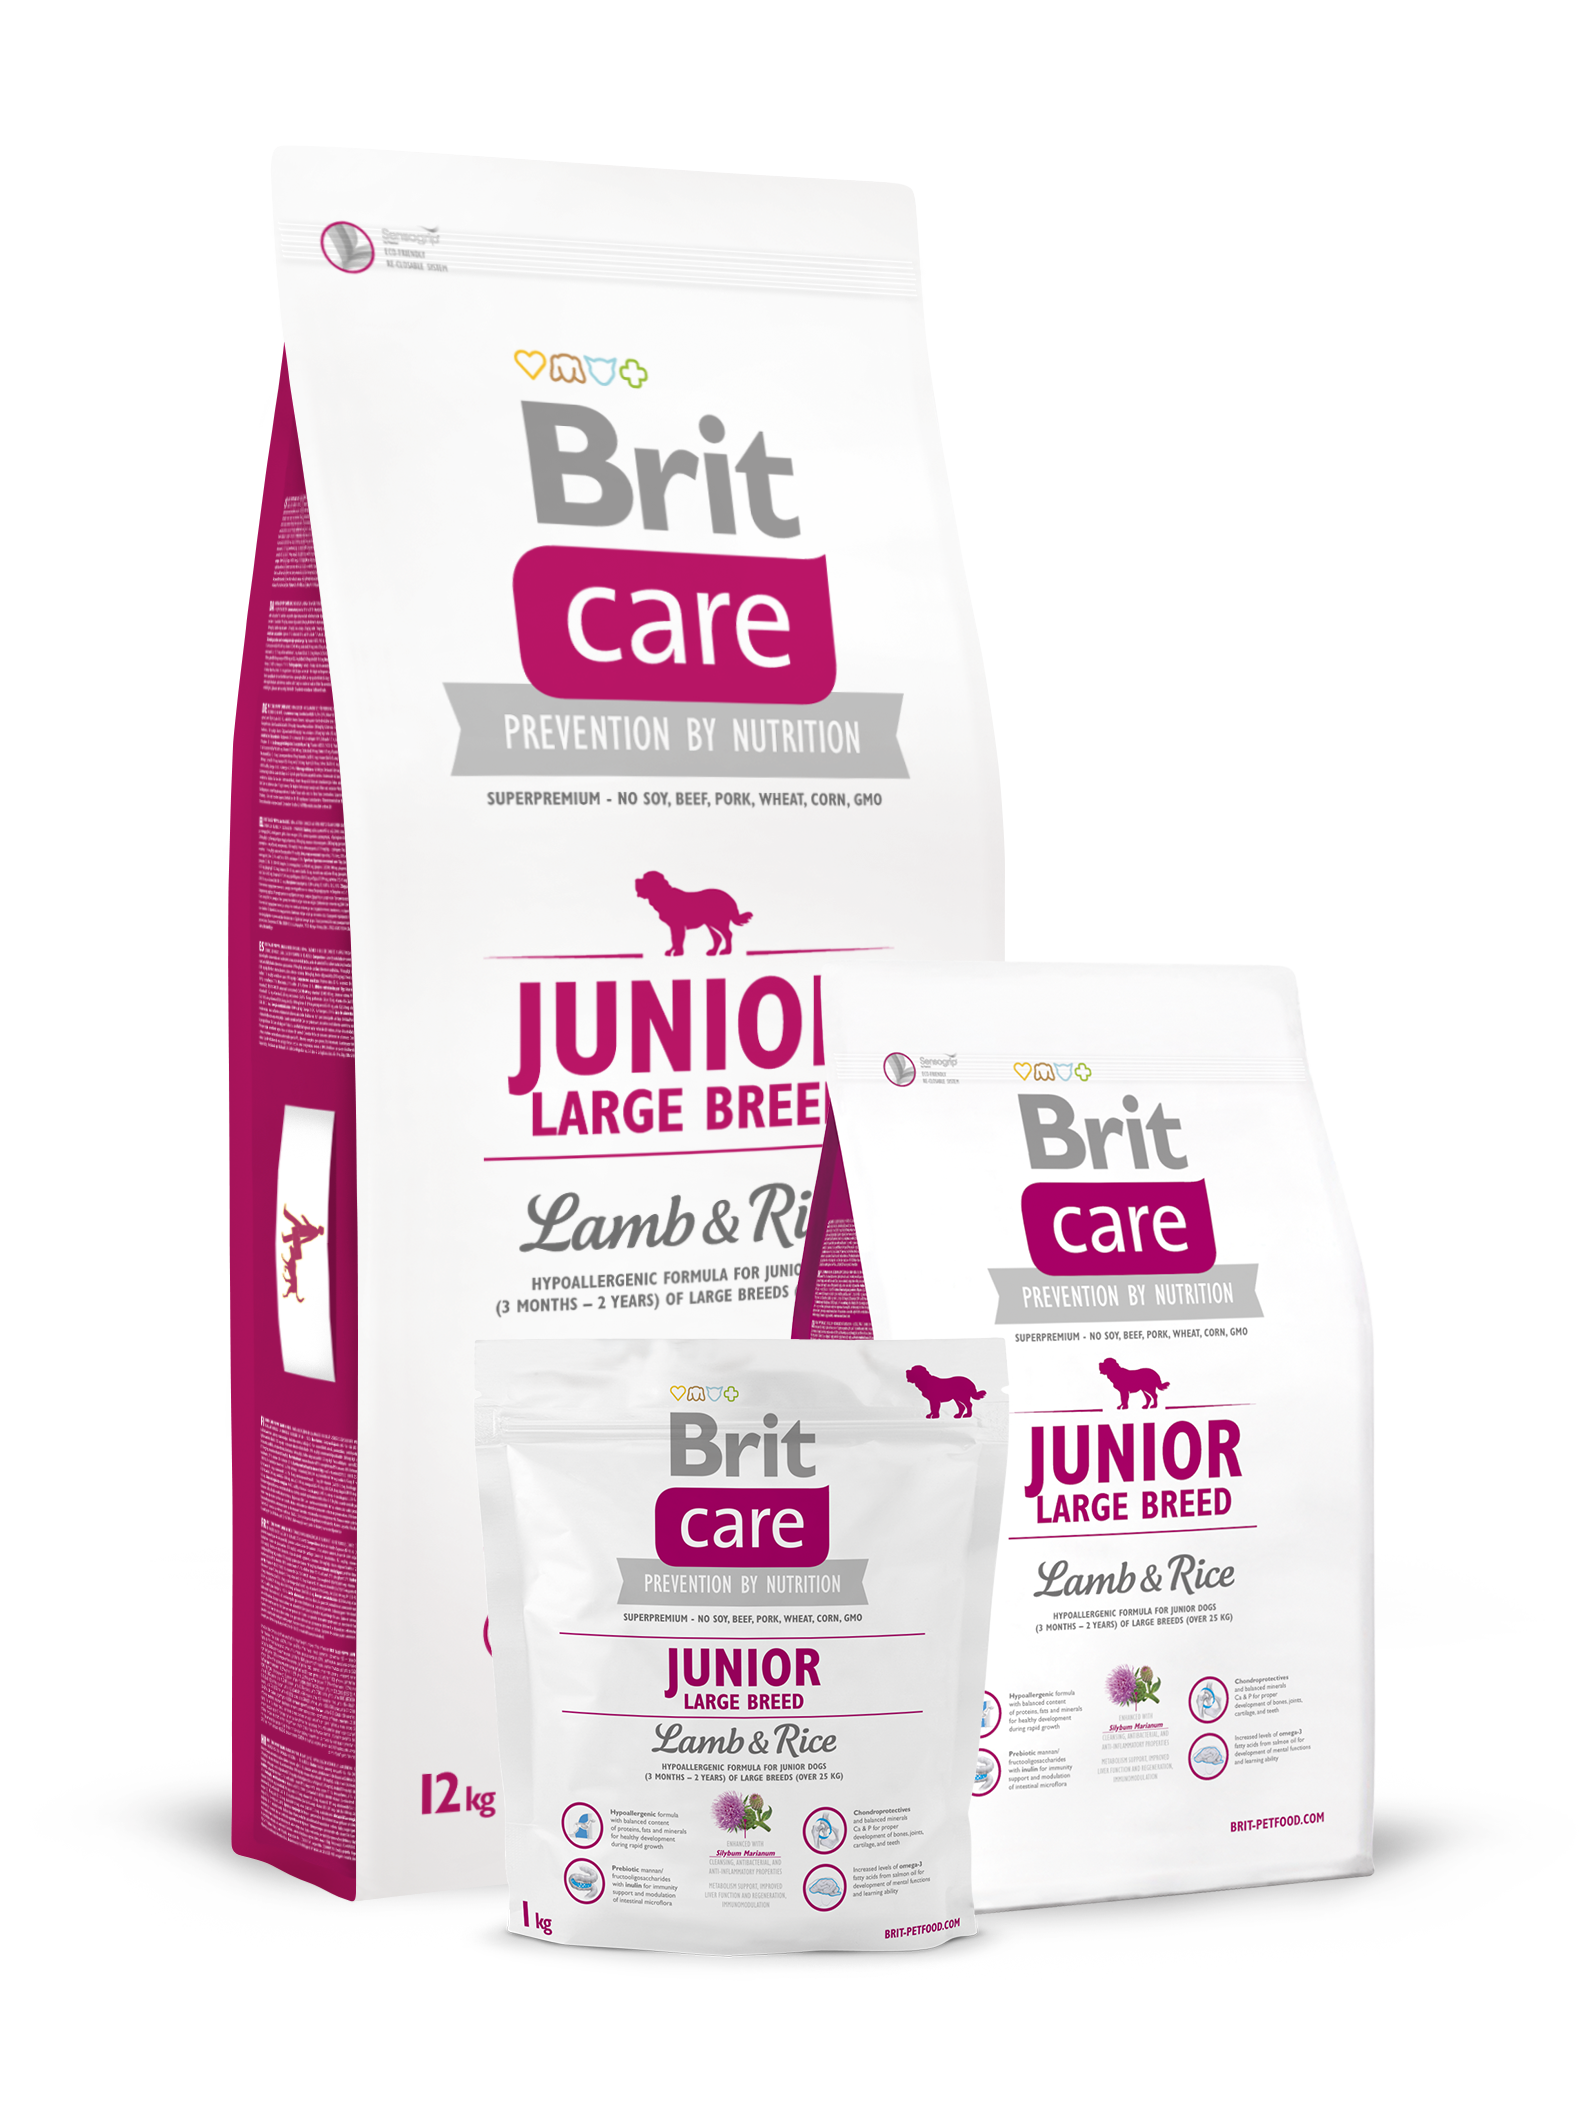 Brit Care Junior Large Breed Lamb & Rice - Pet Food - Pet Store - Pet supplies